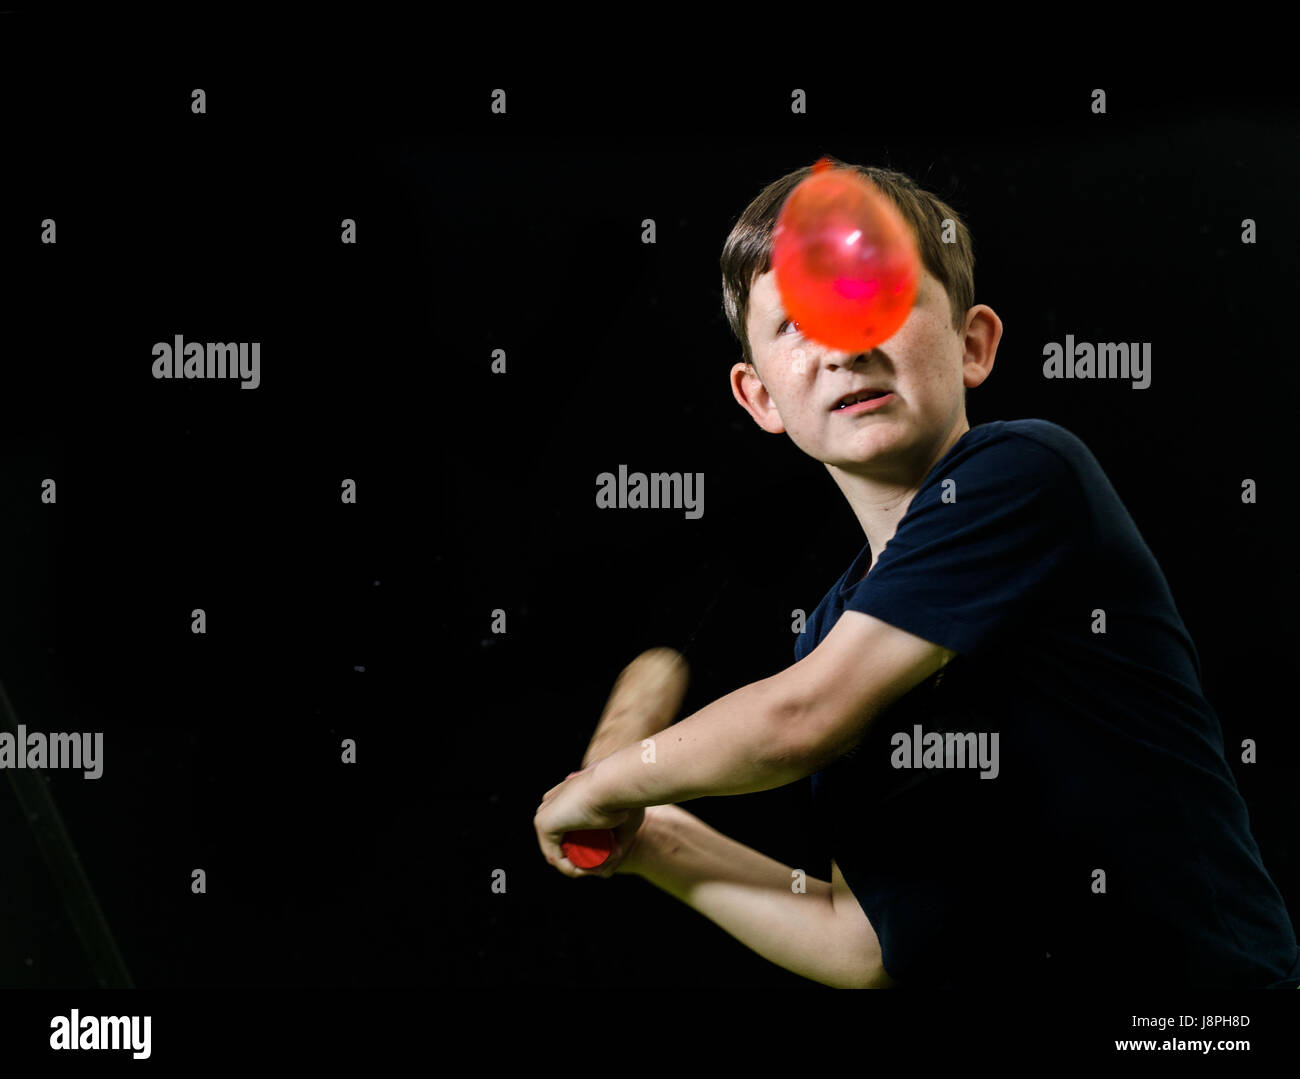 Young boy, with a look of determination and concentration on his face, takes aim with his bat at a red water balloon - Stock Image